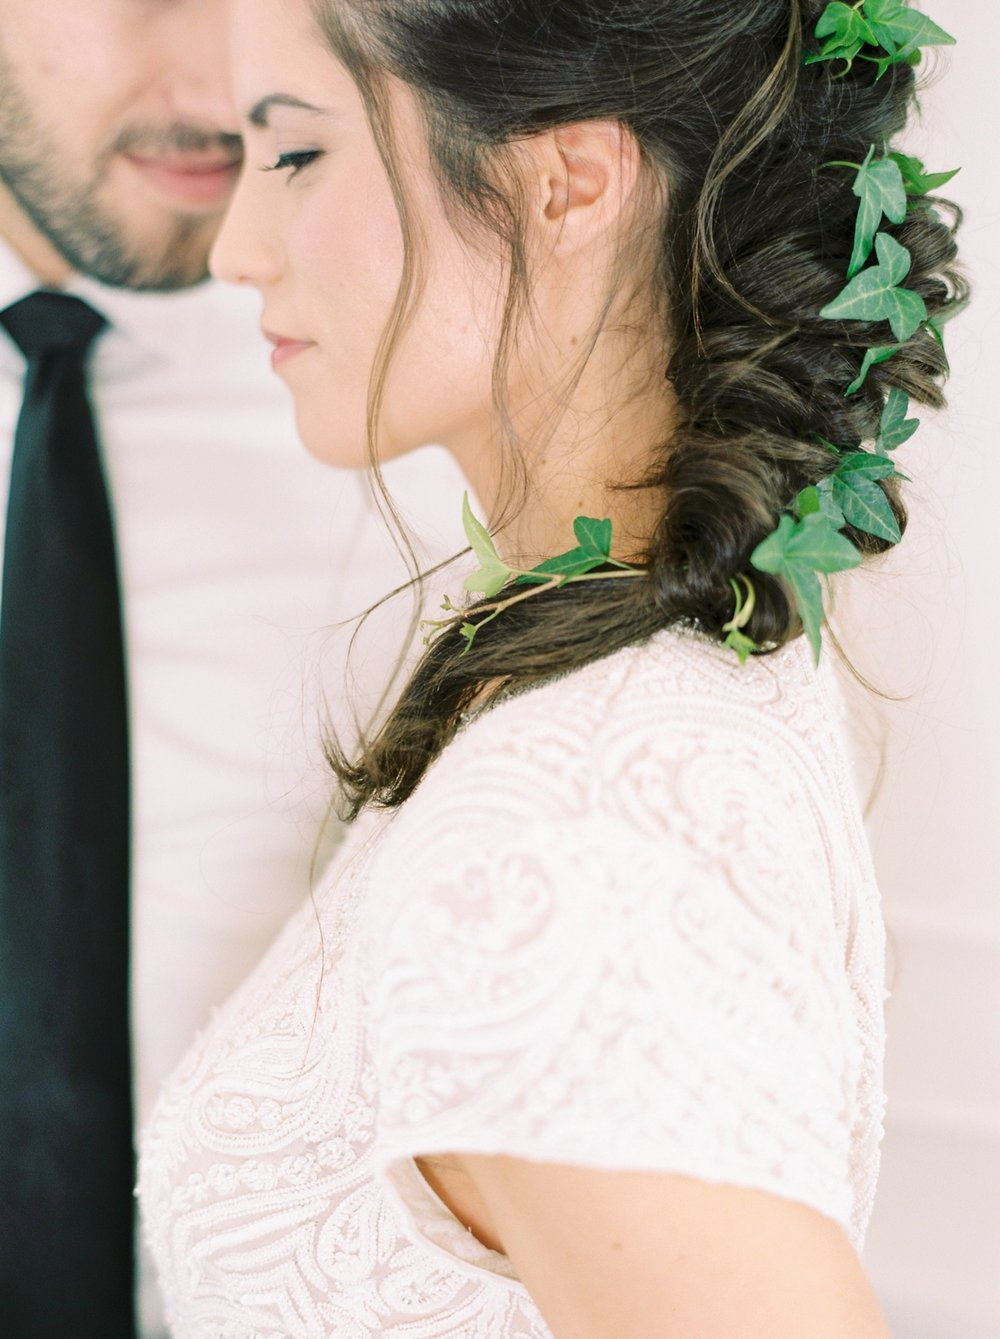 Calgary wedding photographers | fine art film | Justine Milton Photography | wedding details | editorial | wedding inspiration | bride and groom | bridal hair